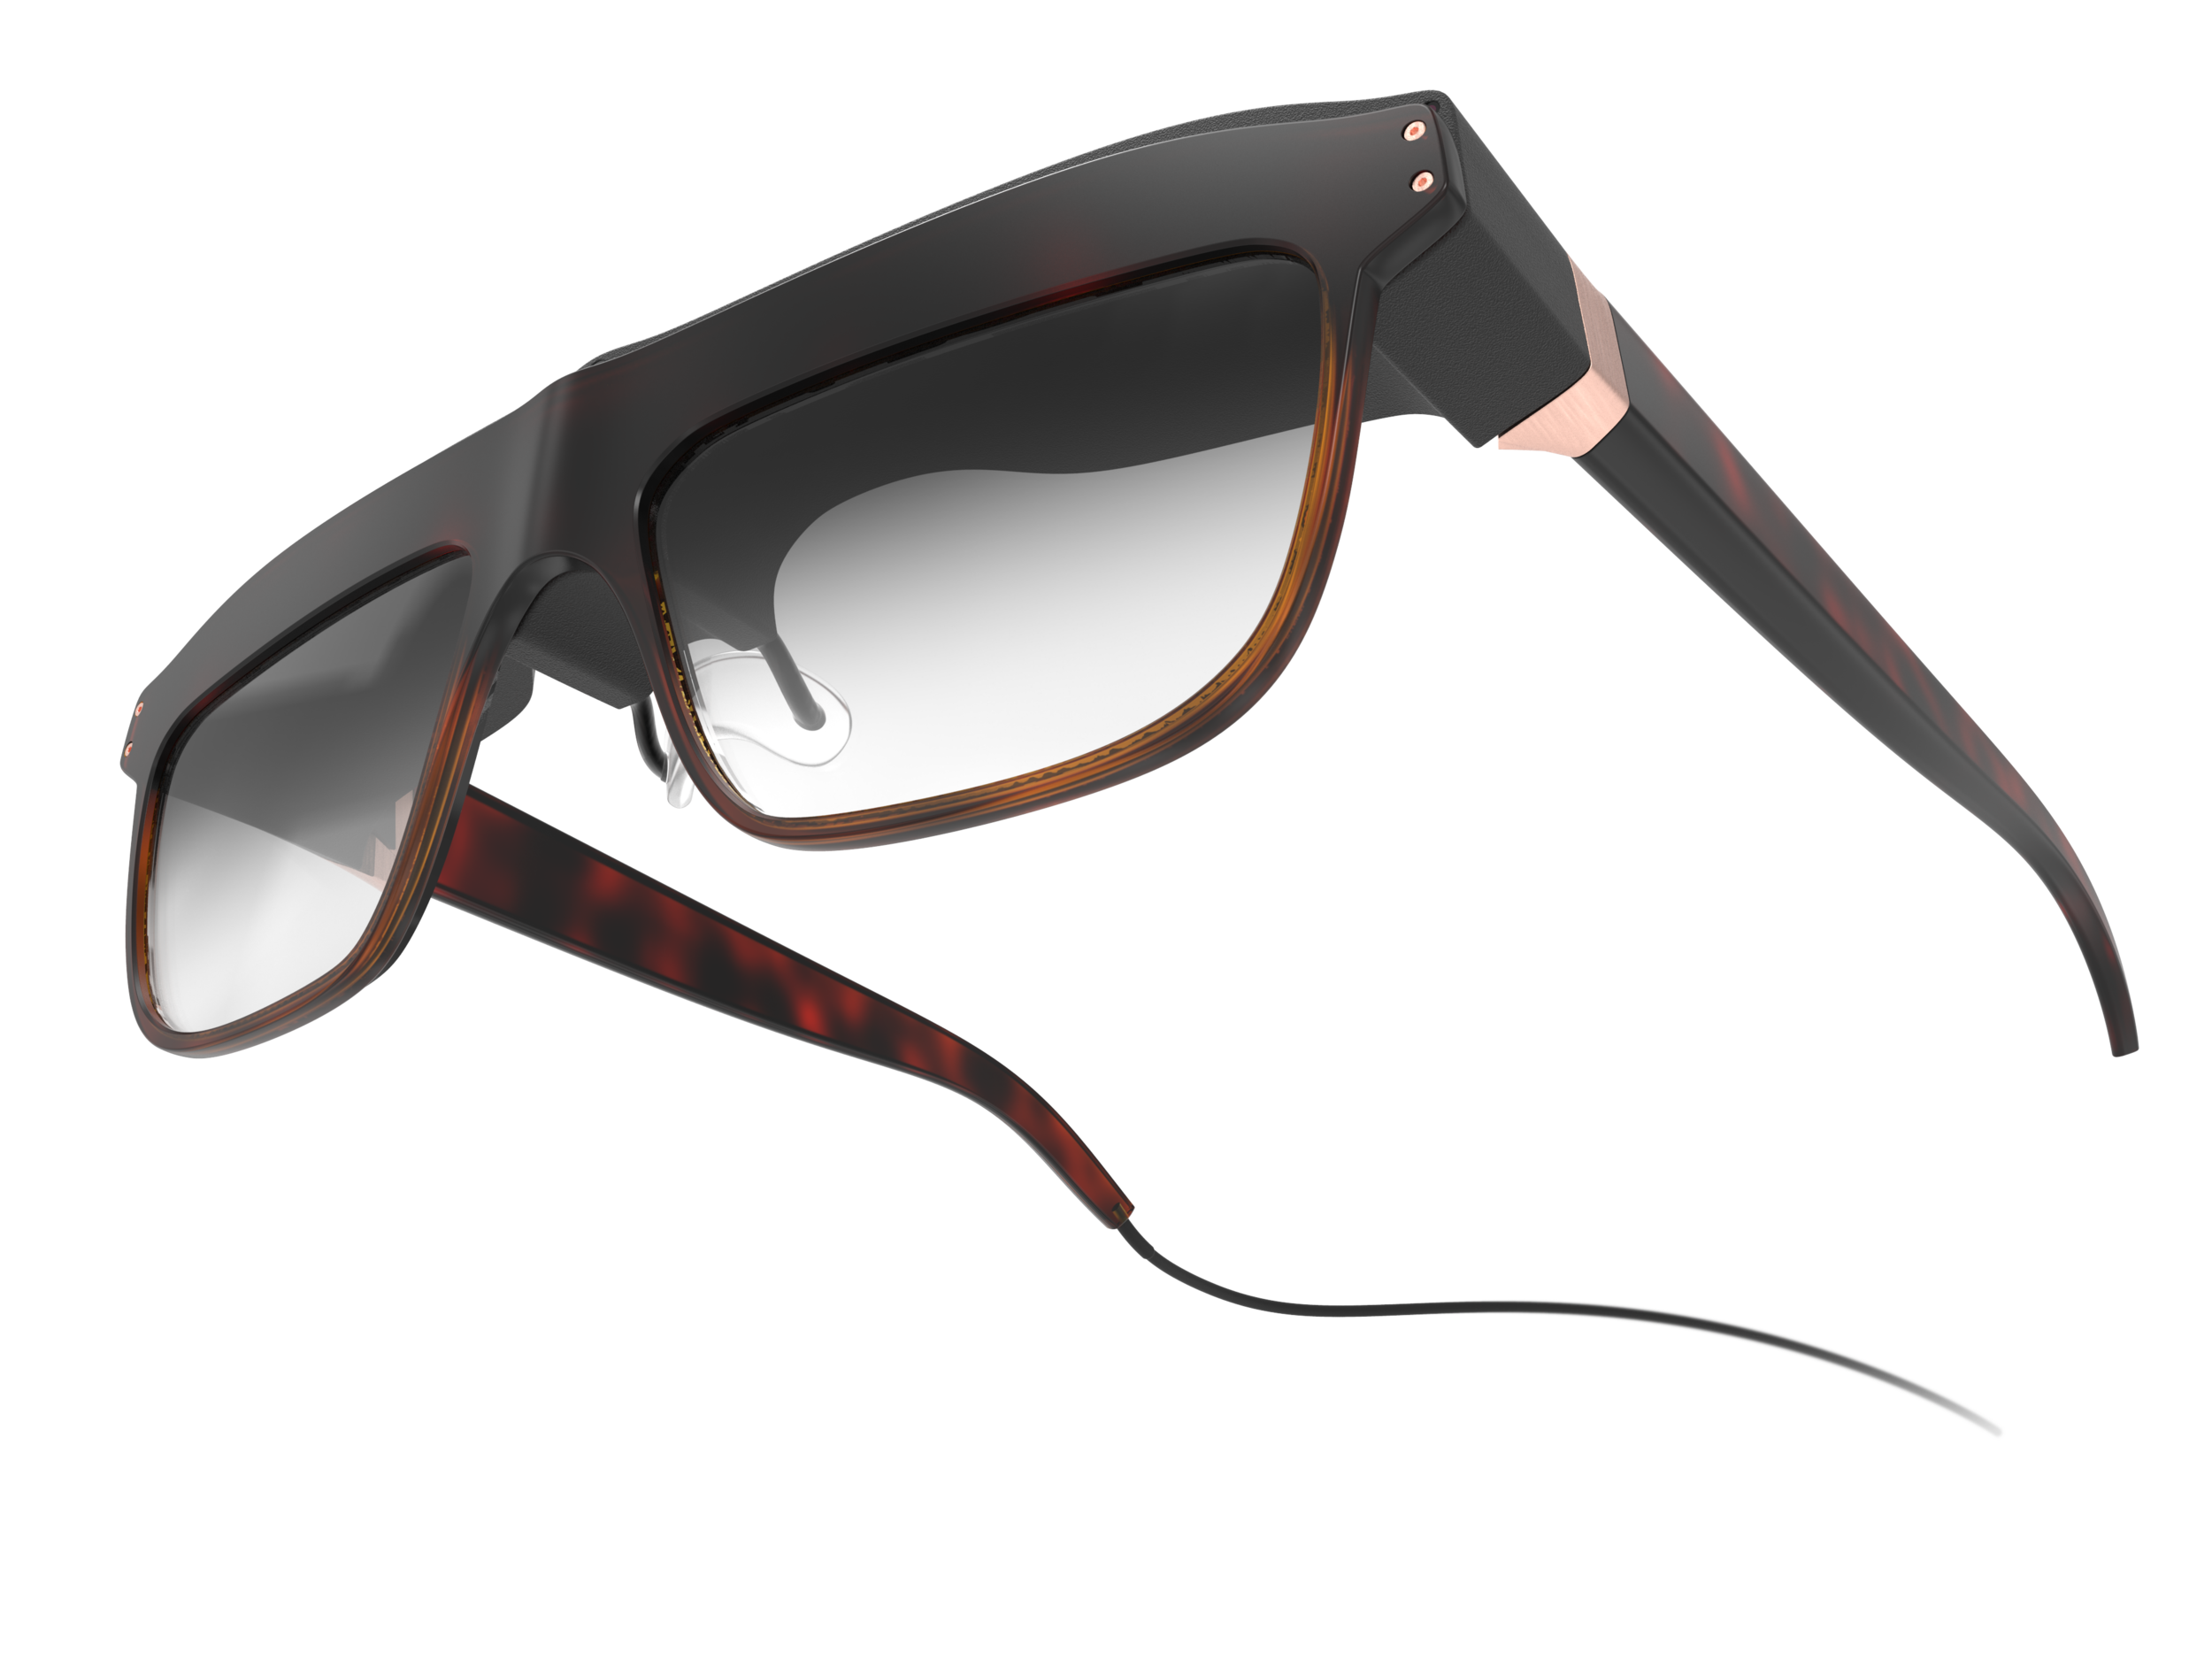 Frog-eye-view perspective of the woman's concept design WaveOptics glasses